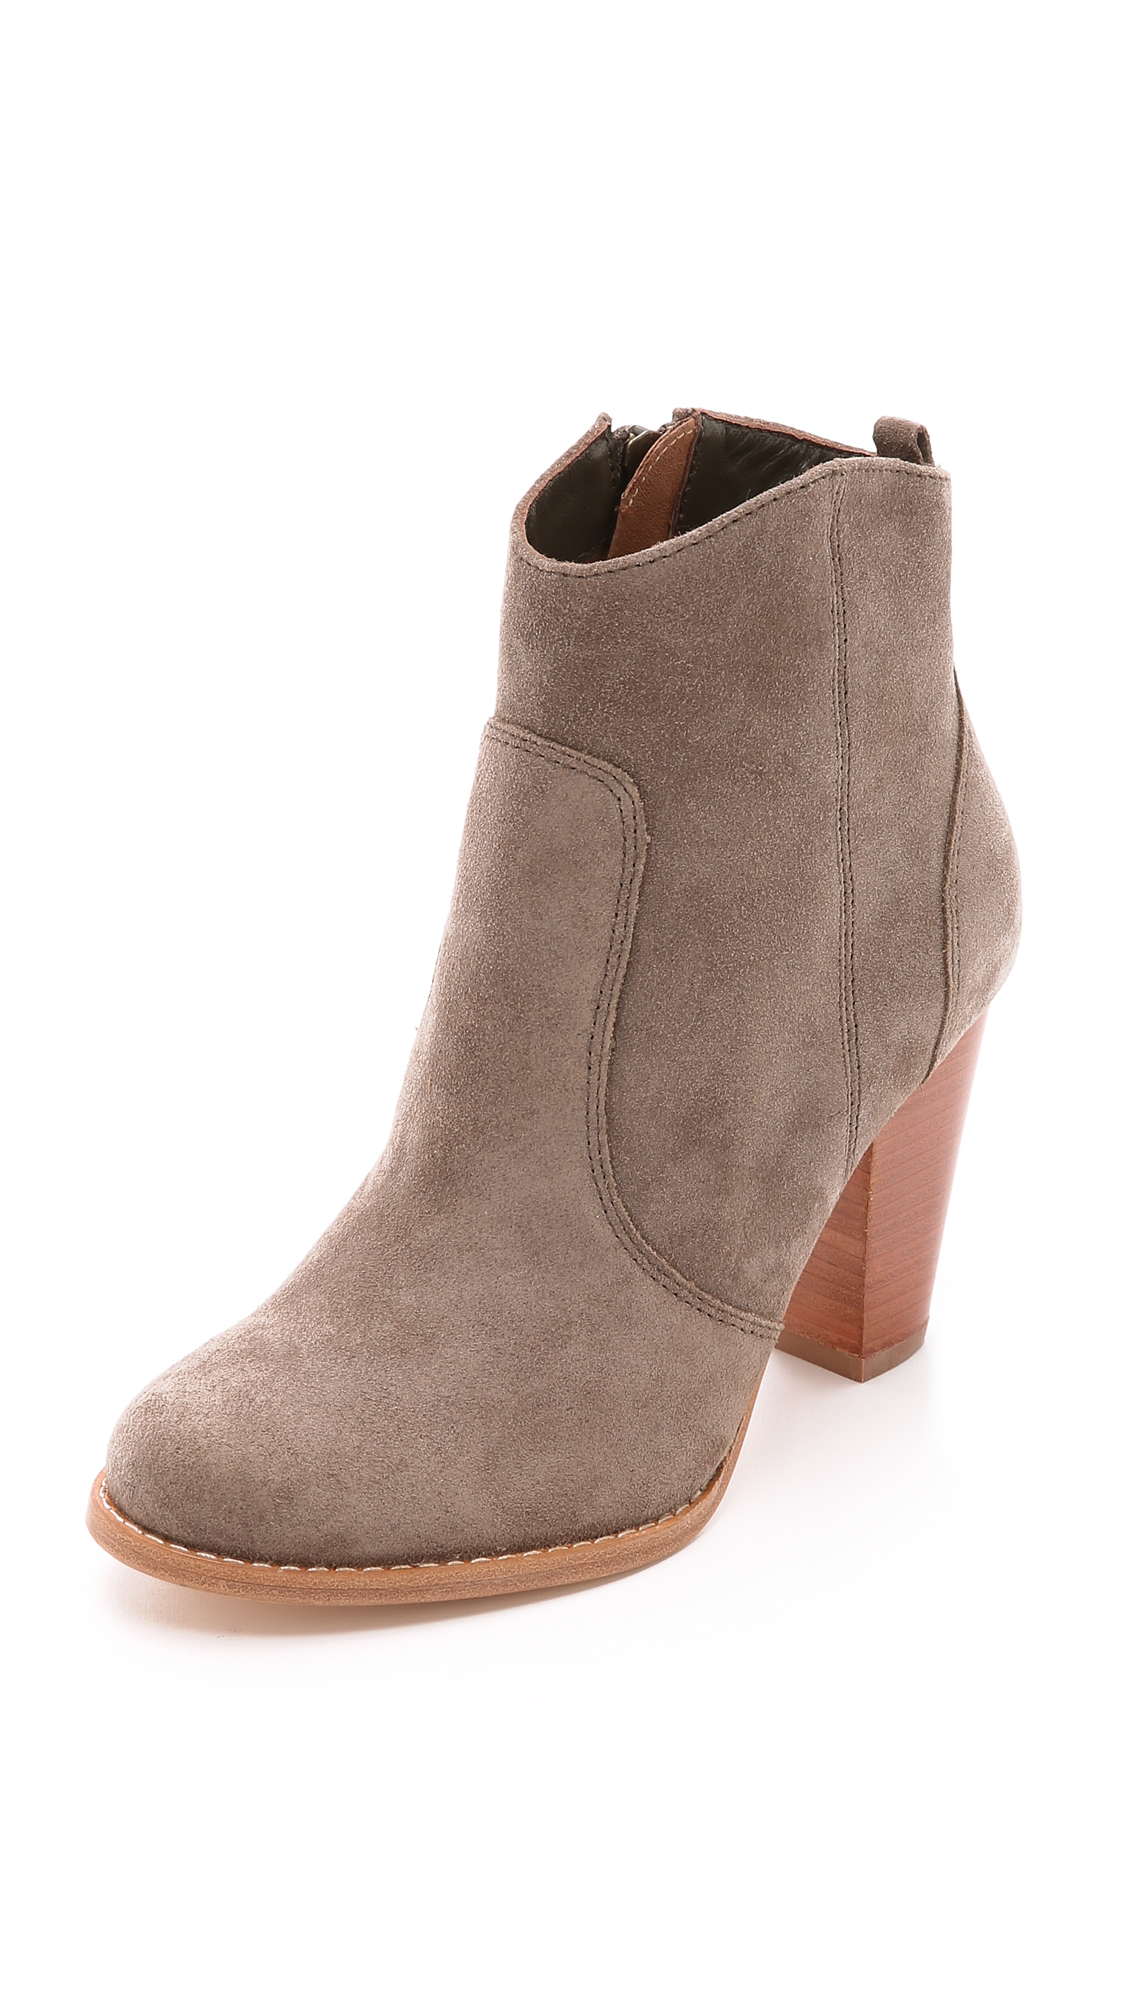 Joie Dalton Booties - Charcoal